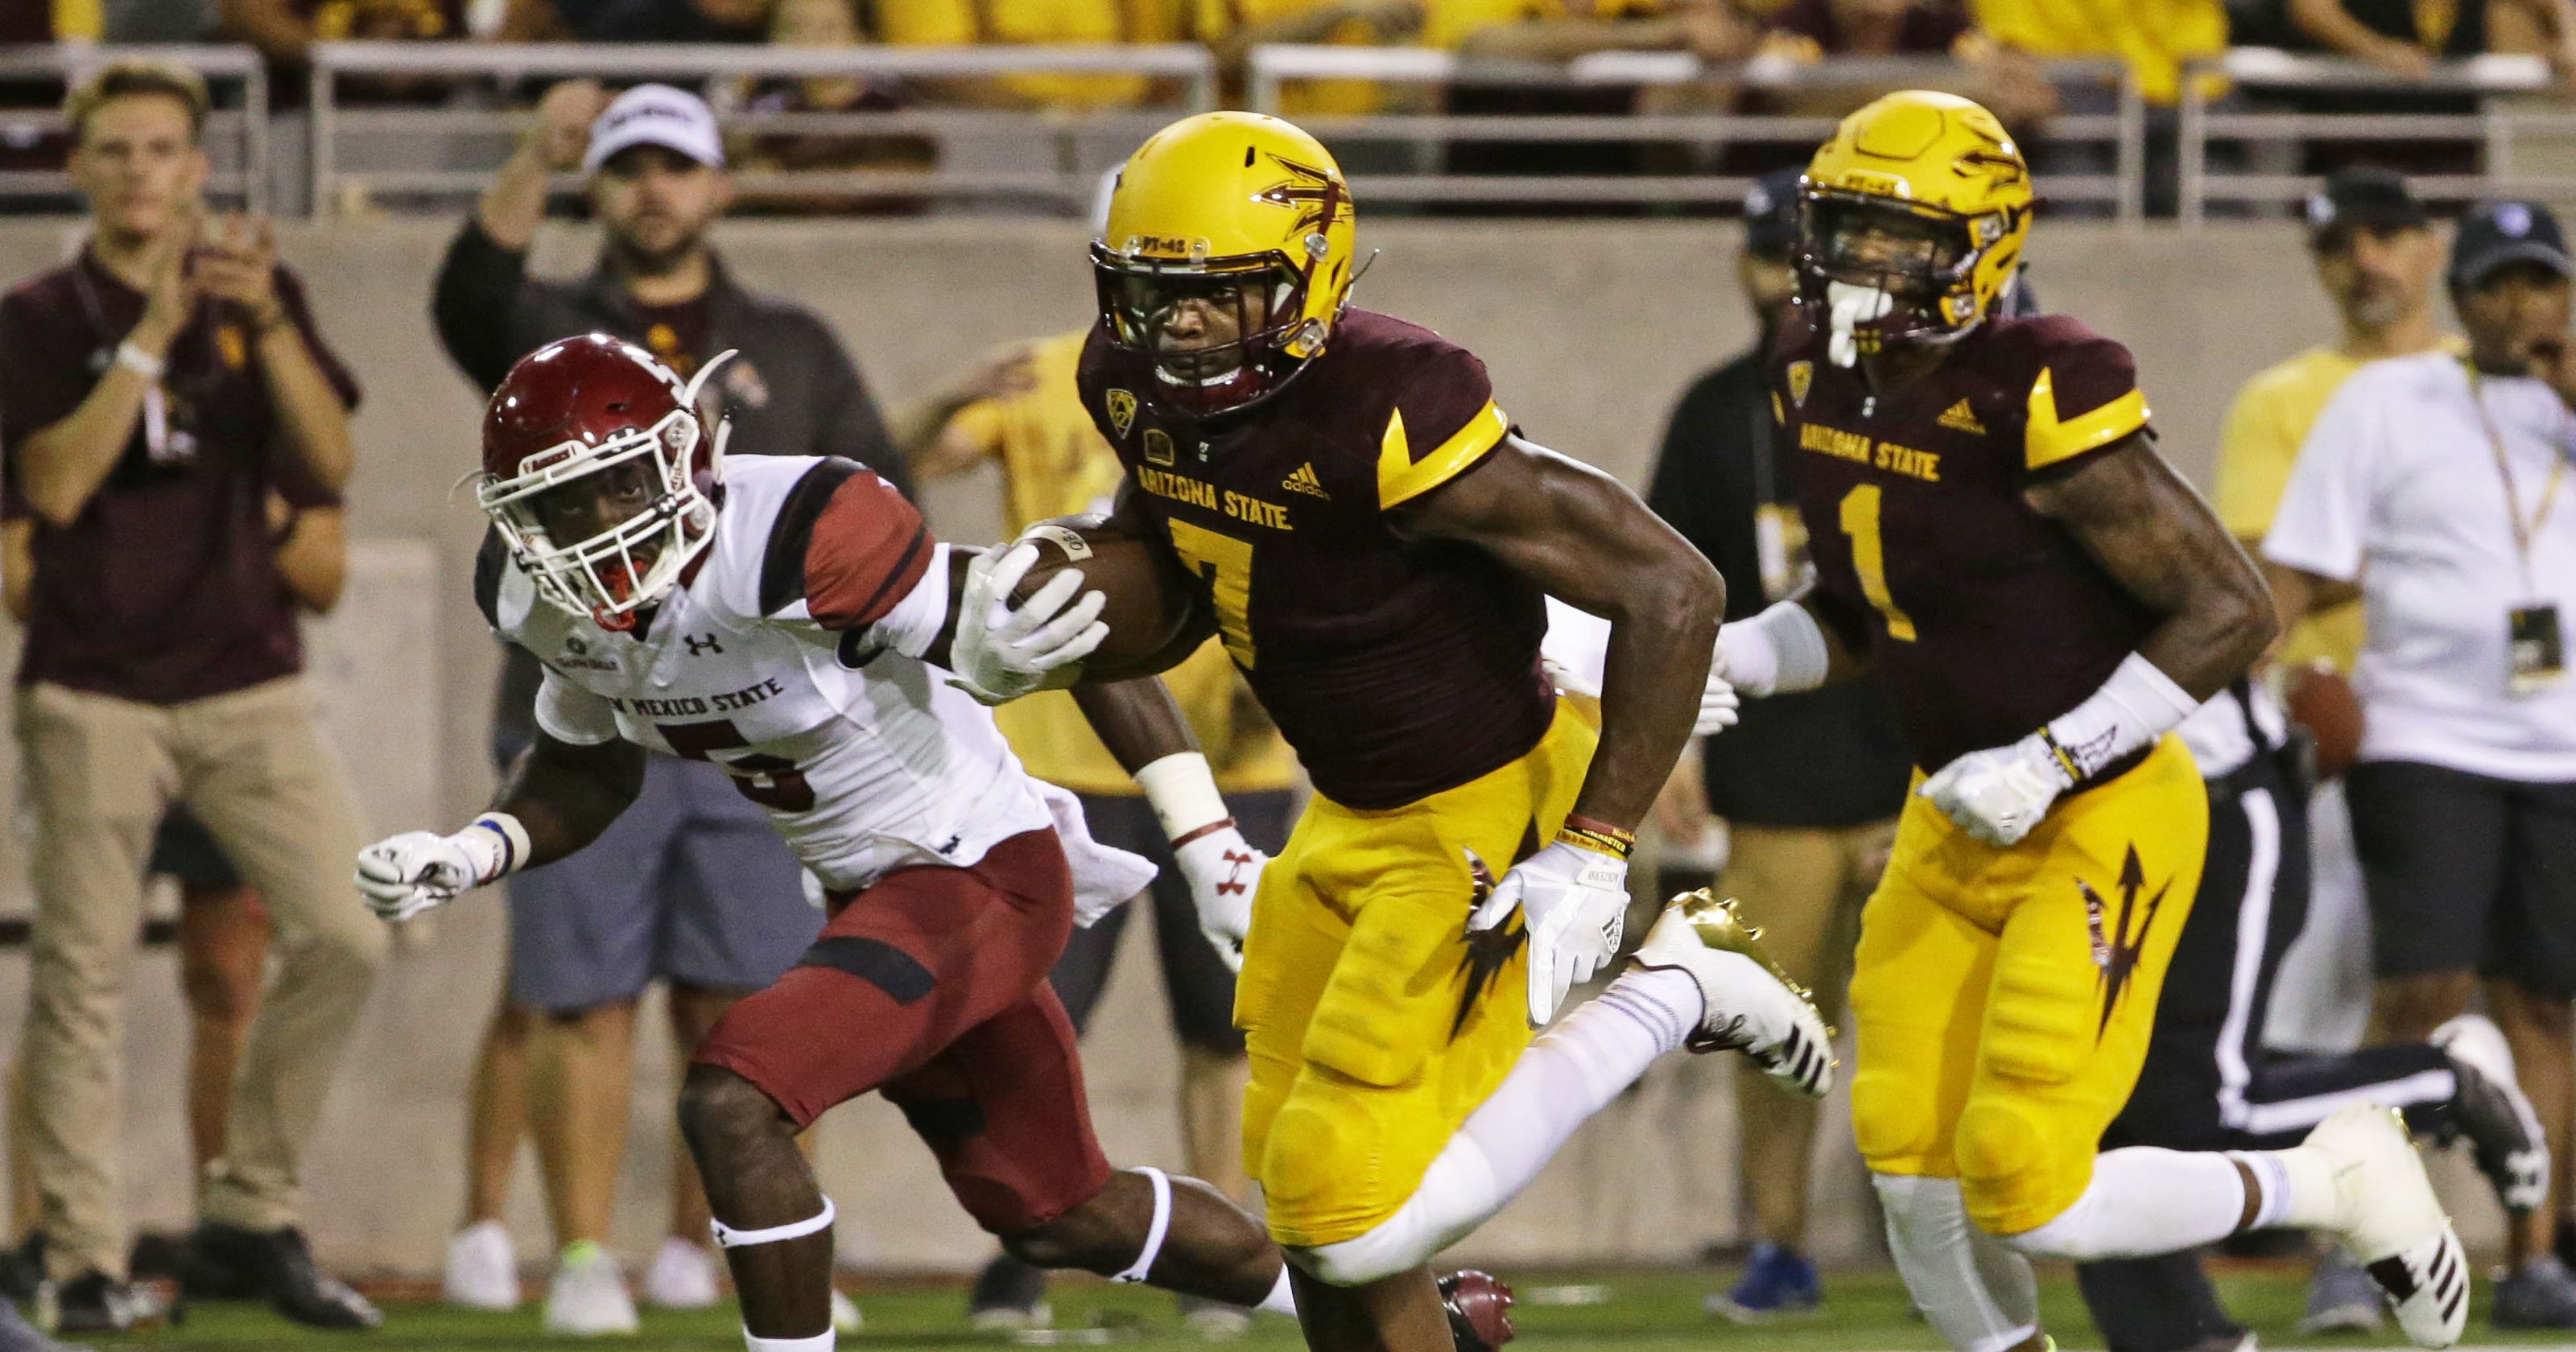 ASU underwhelms in opening 37-31 win over New Mexico State f9c6bfc62